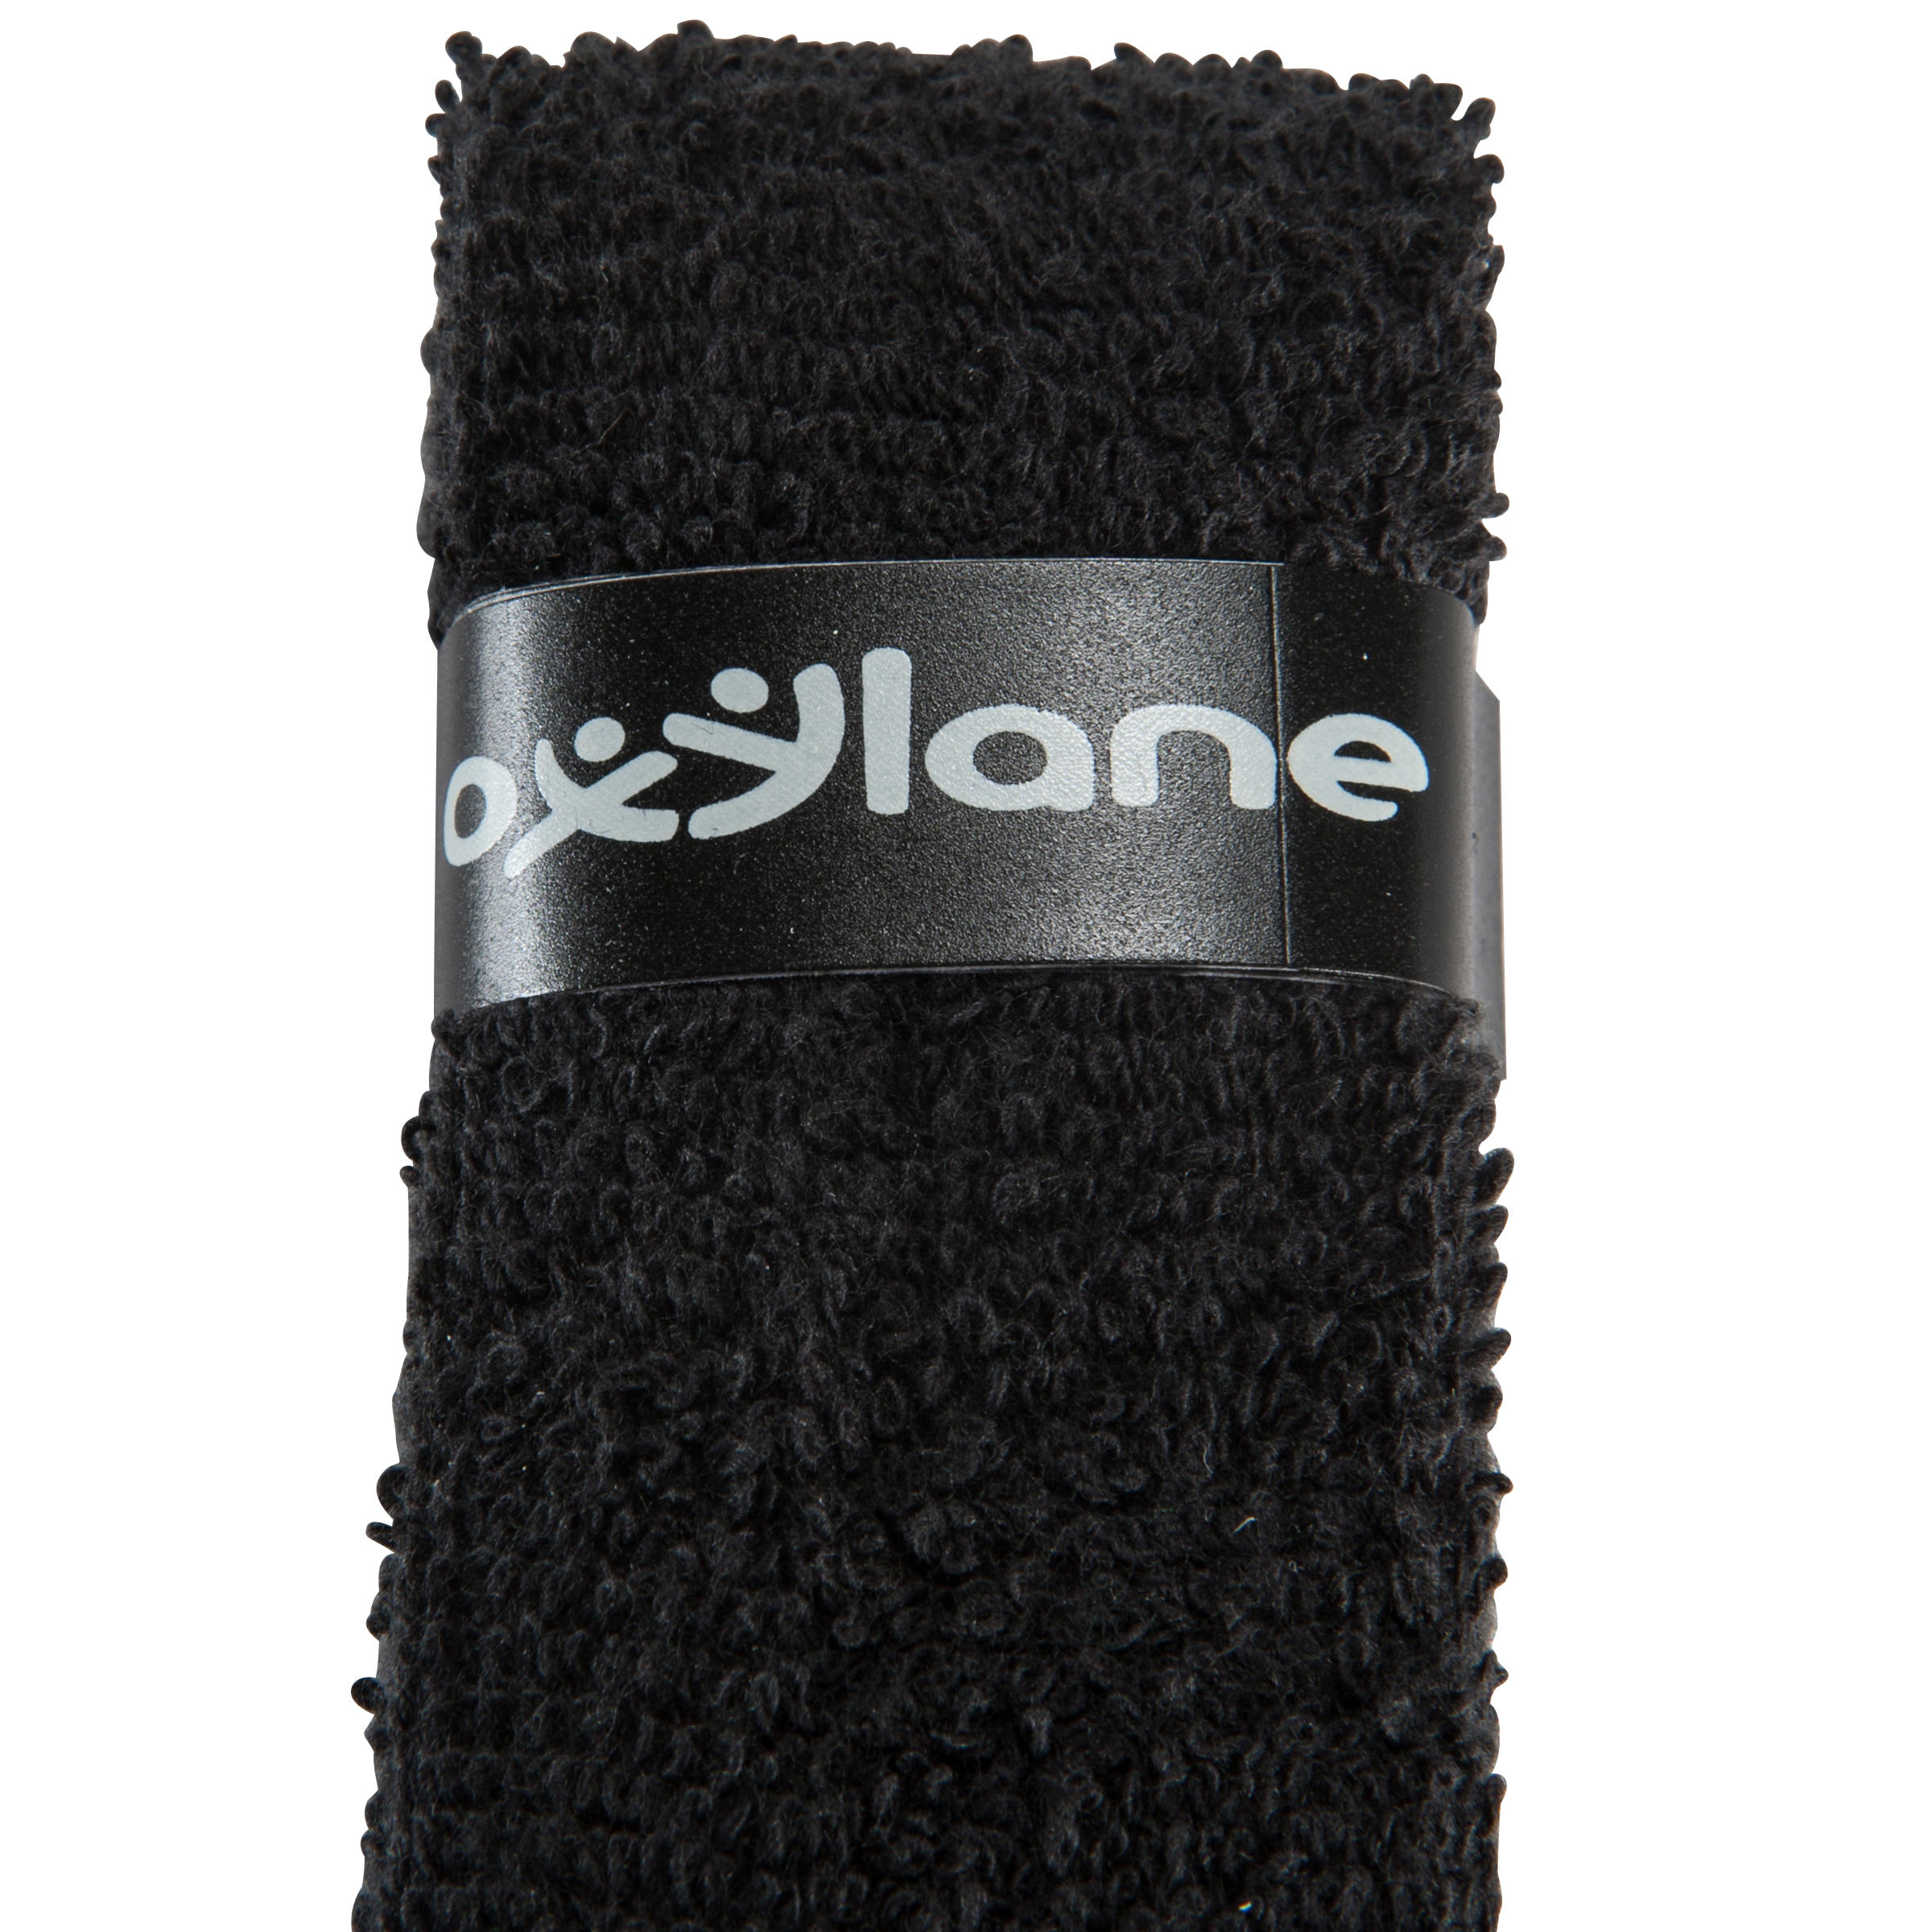 Towel Grip Badminton Grip Twin-Pack - Black